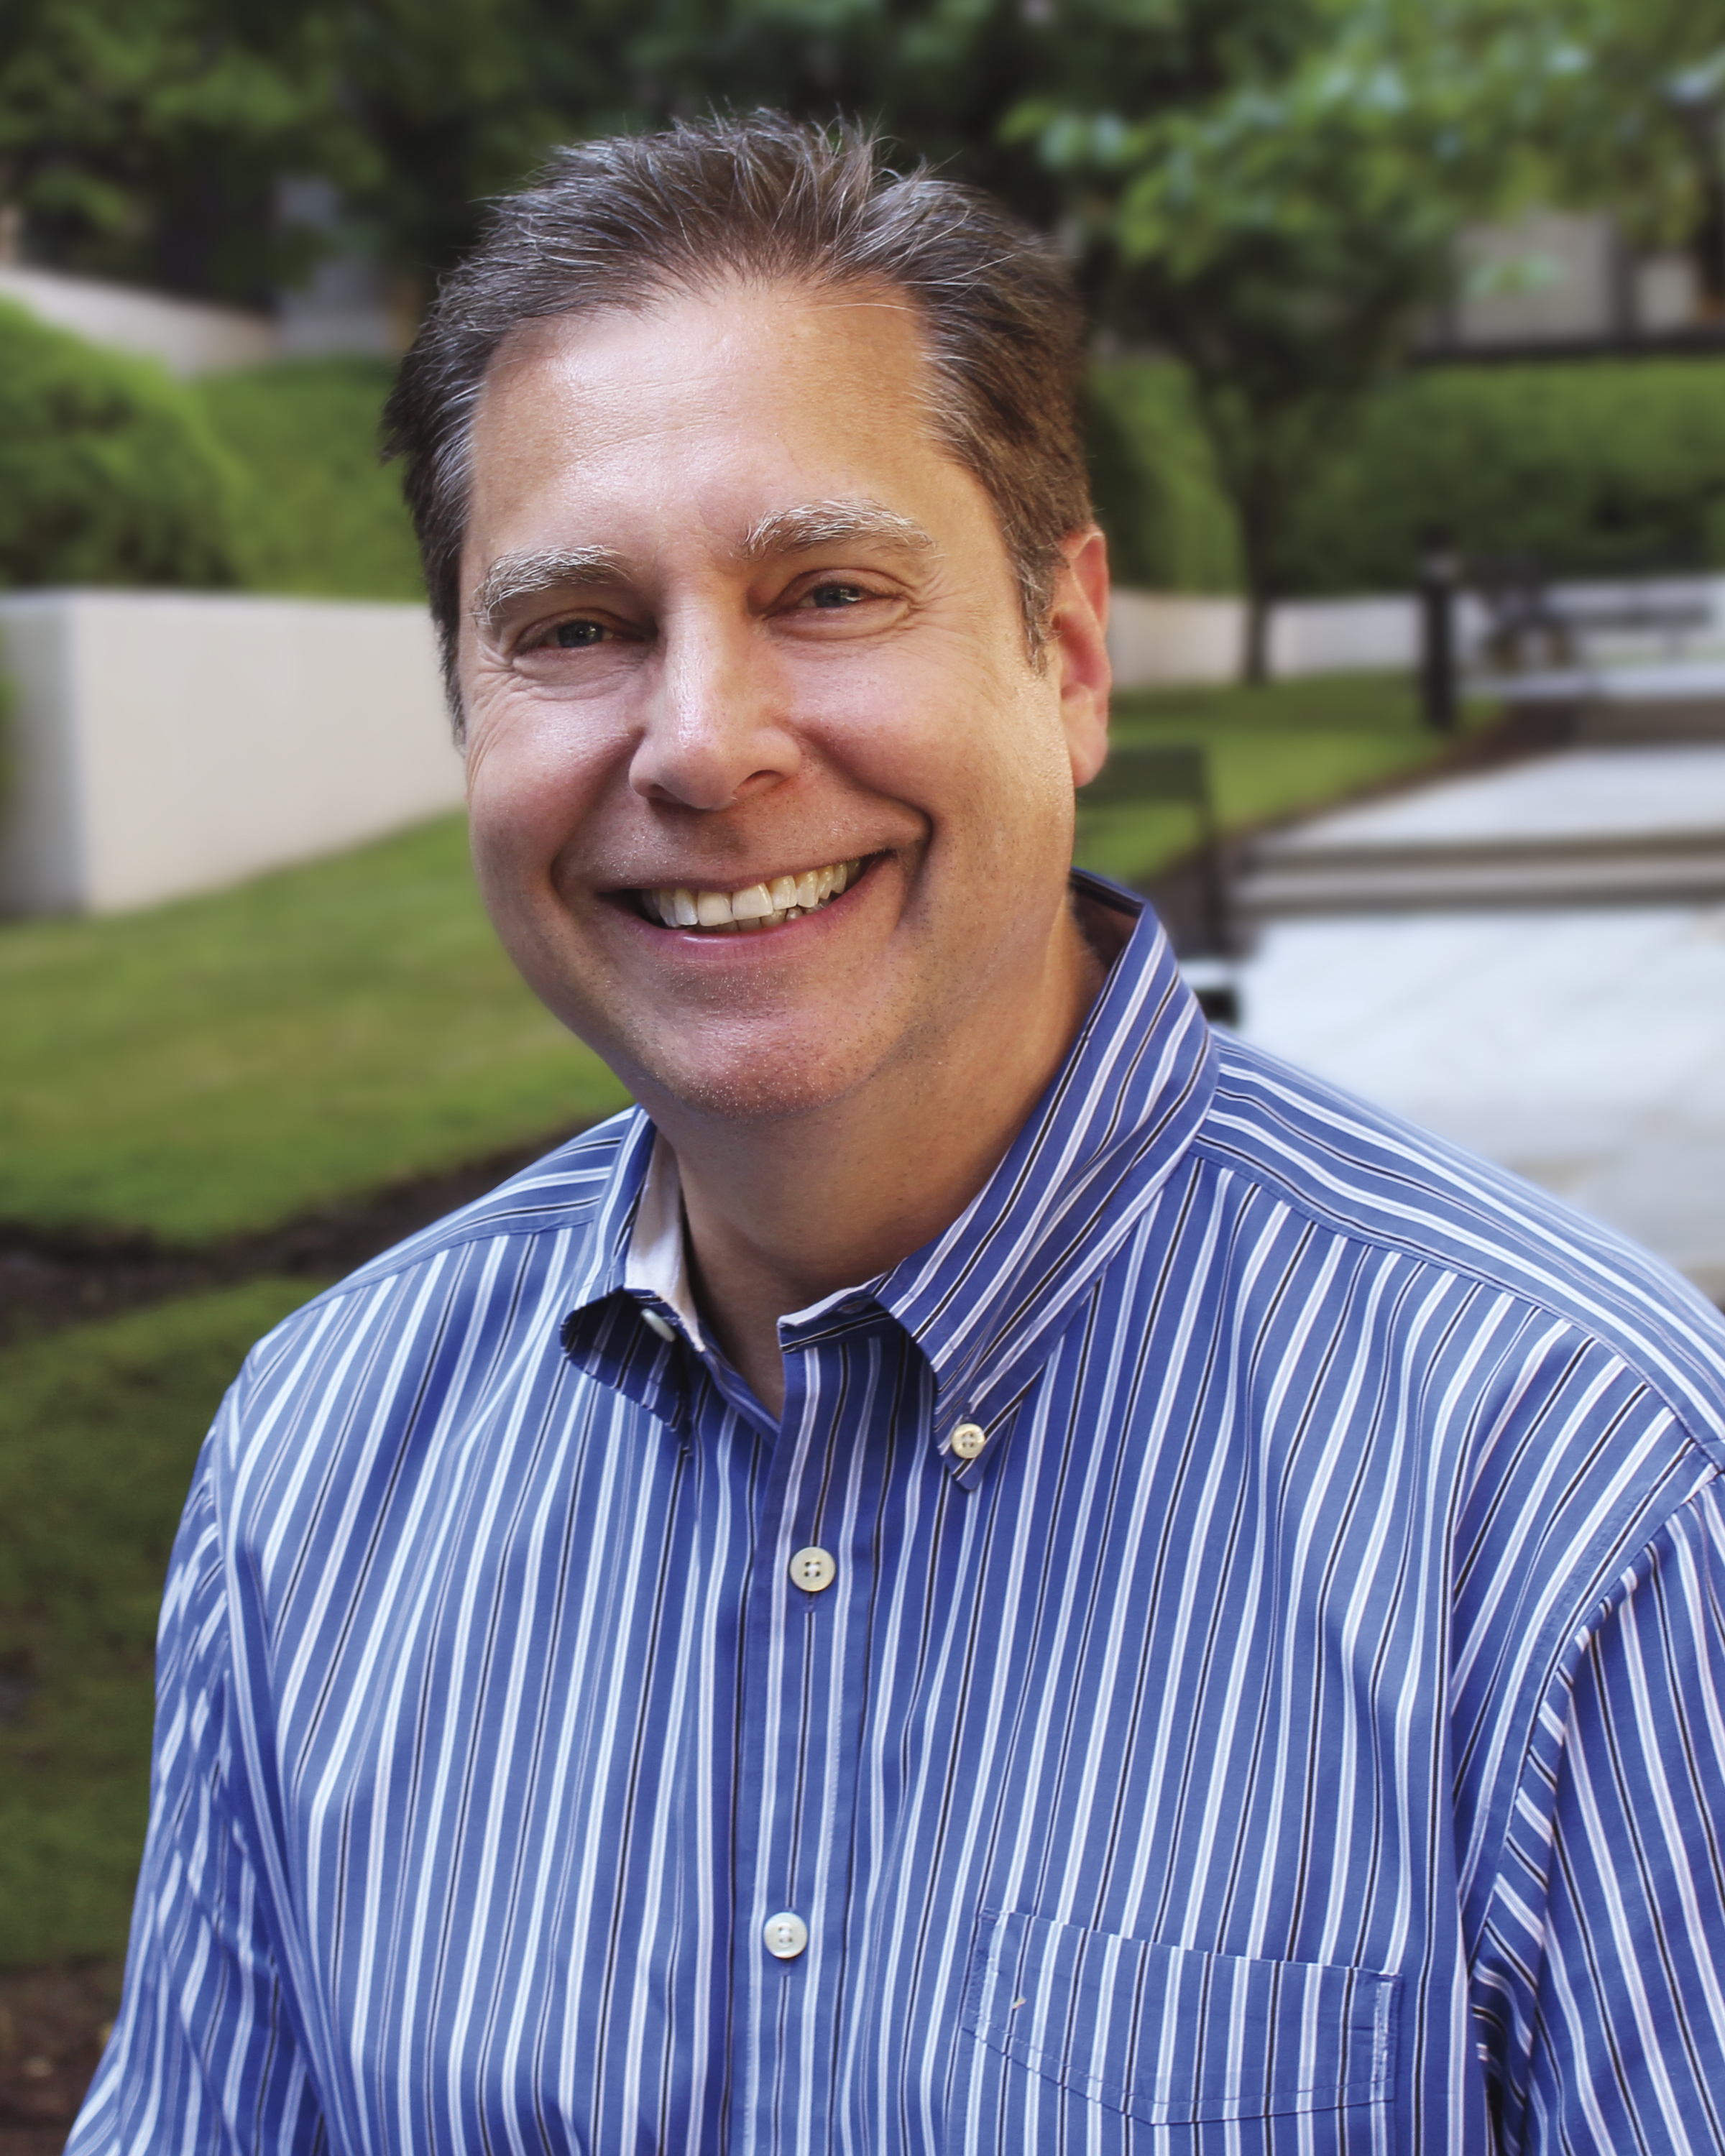 Memo Exclusive: An Interview with Bosley Professional's Alan Stockman